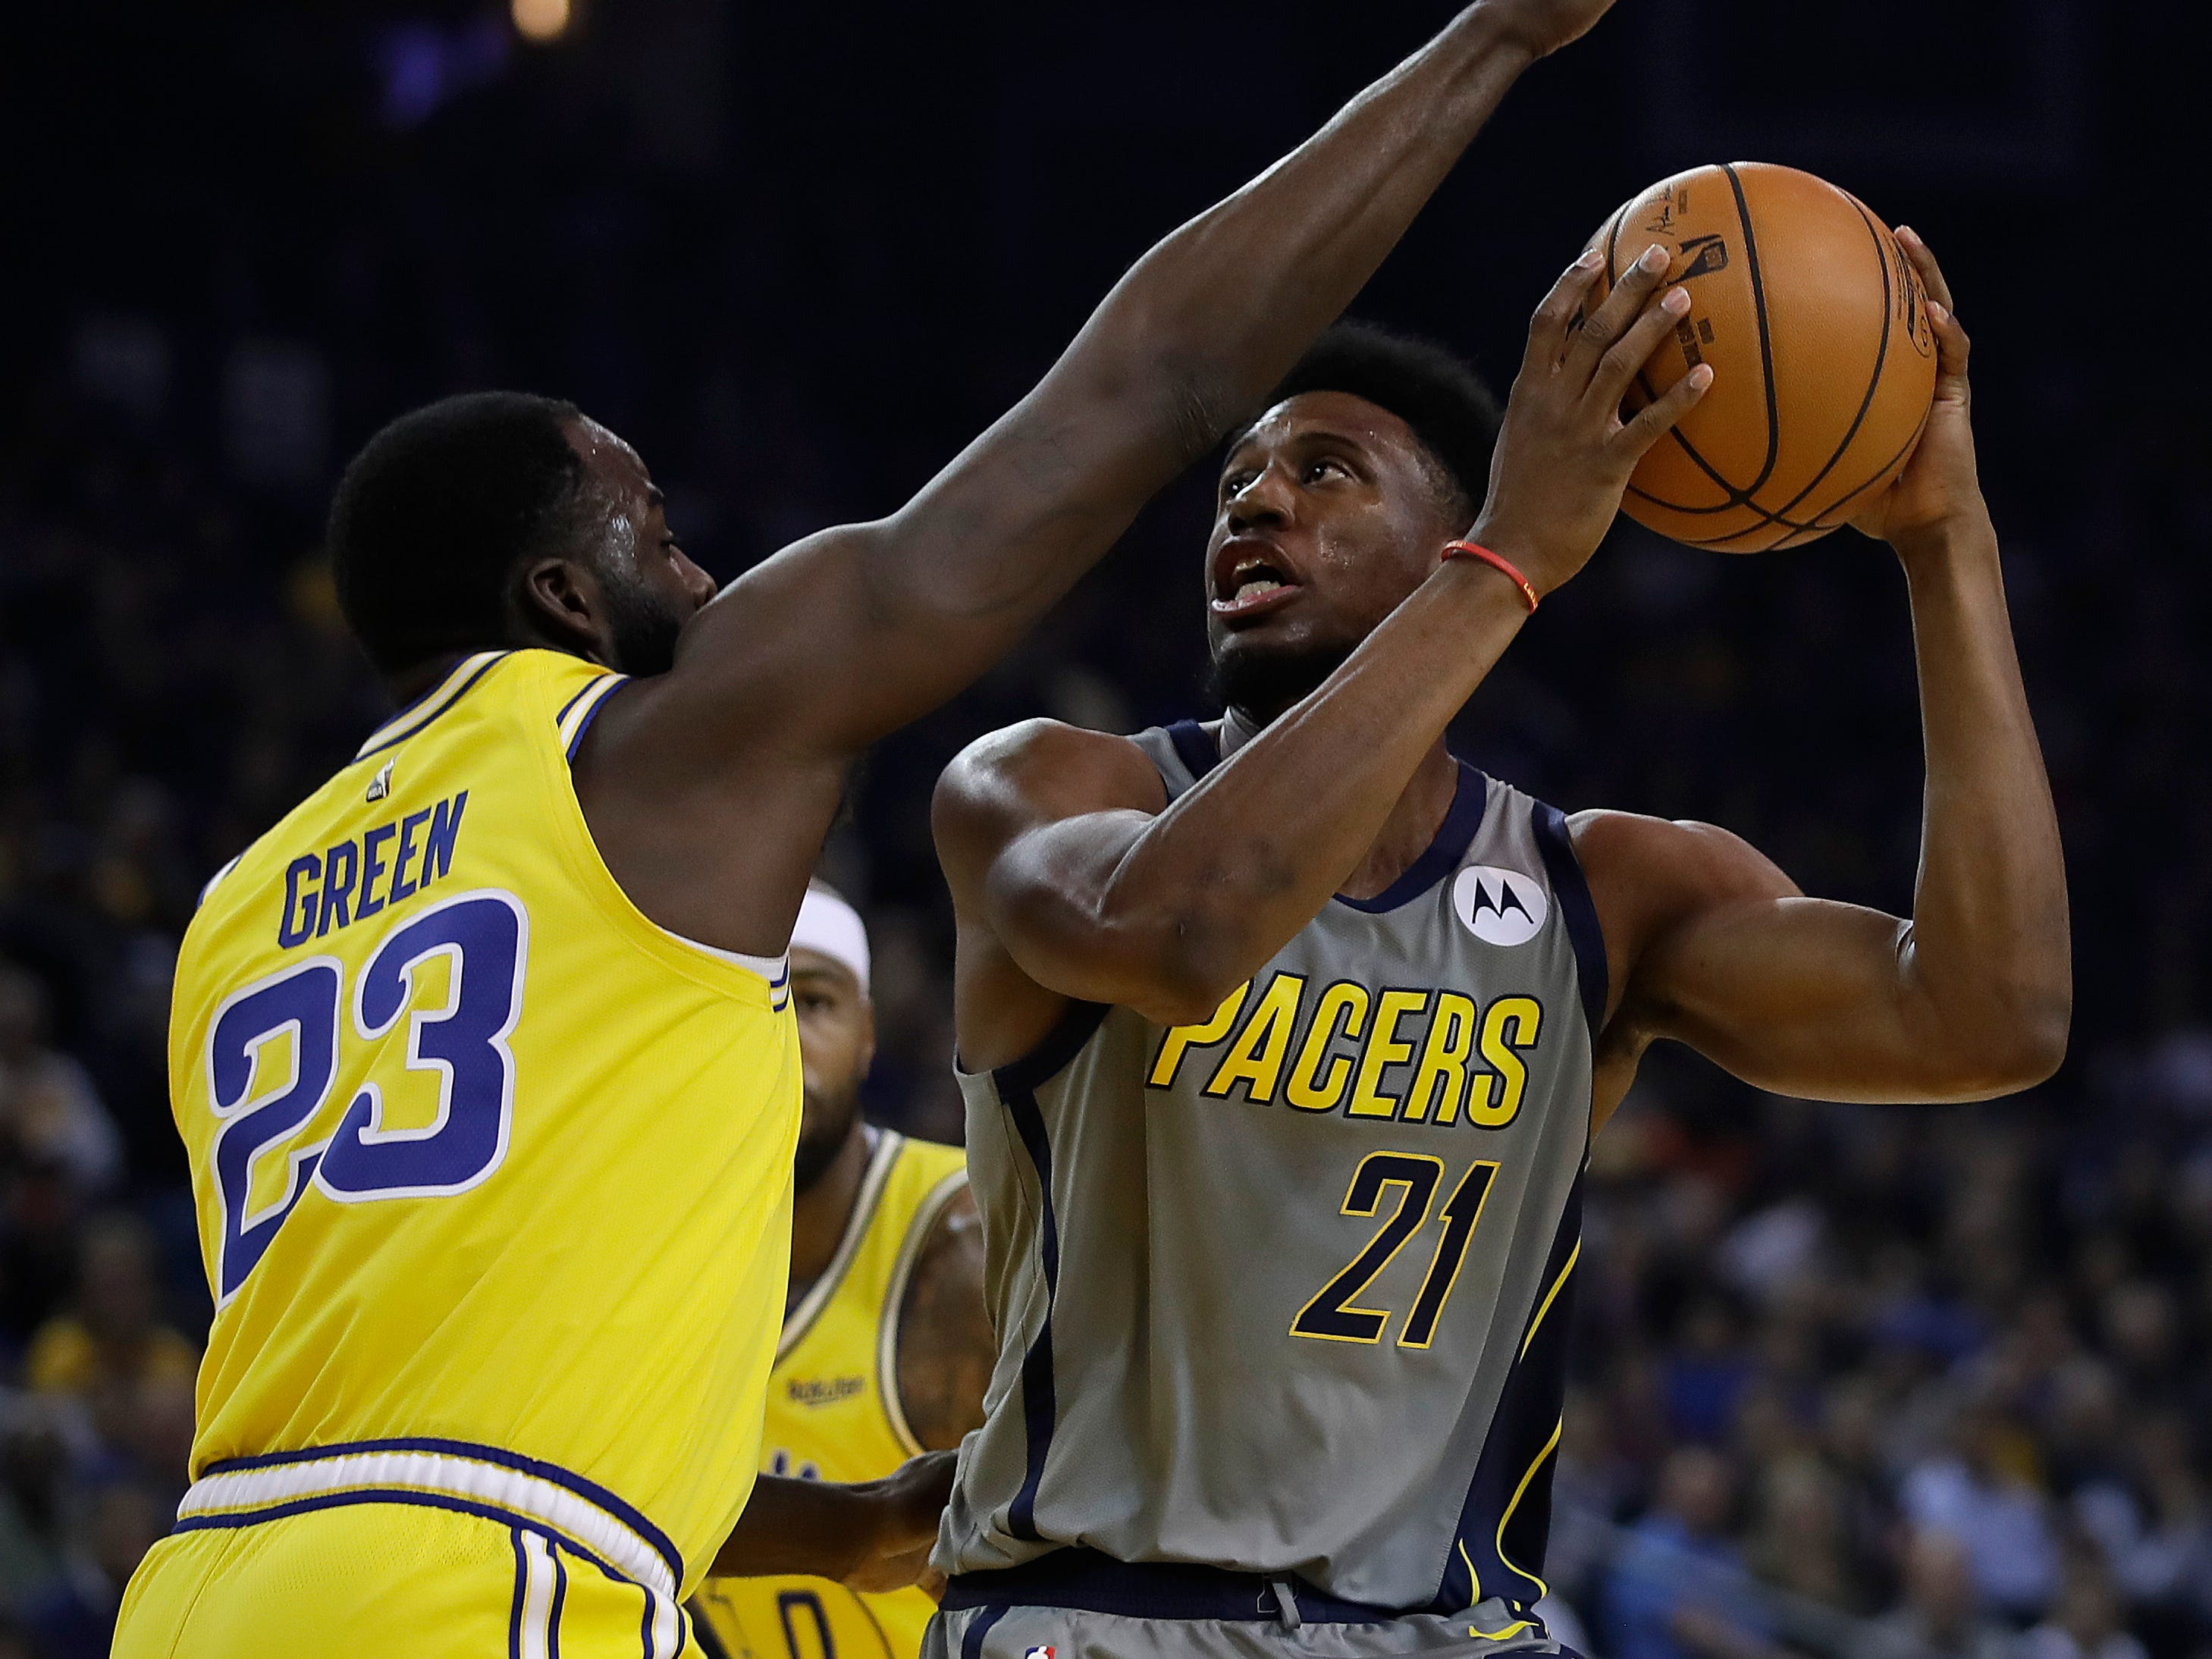 Indiana Pacers' Thaddeus Young, right, shoots against Golden State Warriors' Draymond Green (23) during the first half of an NBA basketball game Thursday, March 21, 2019, in Oakland, Calif.